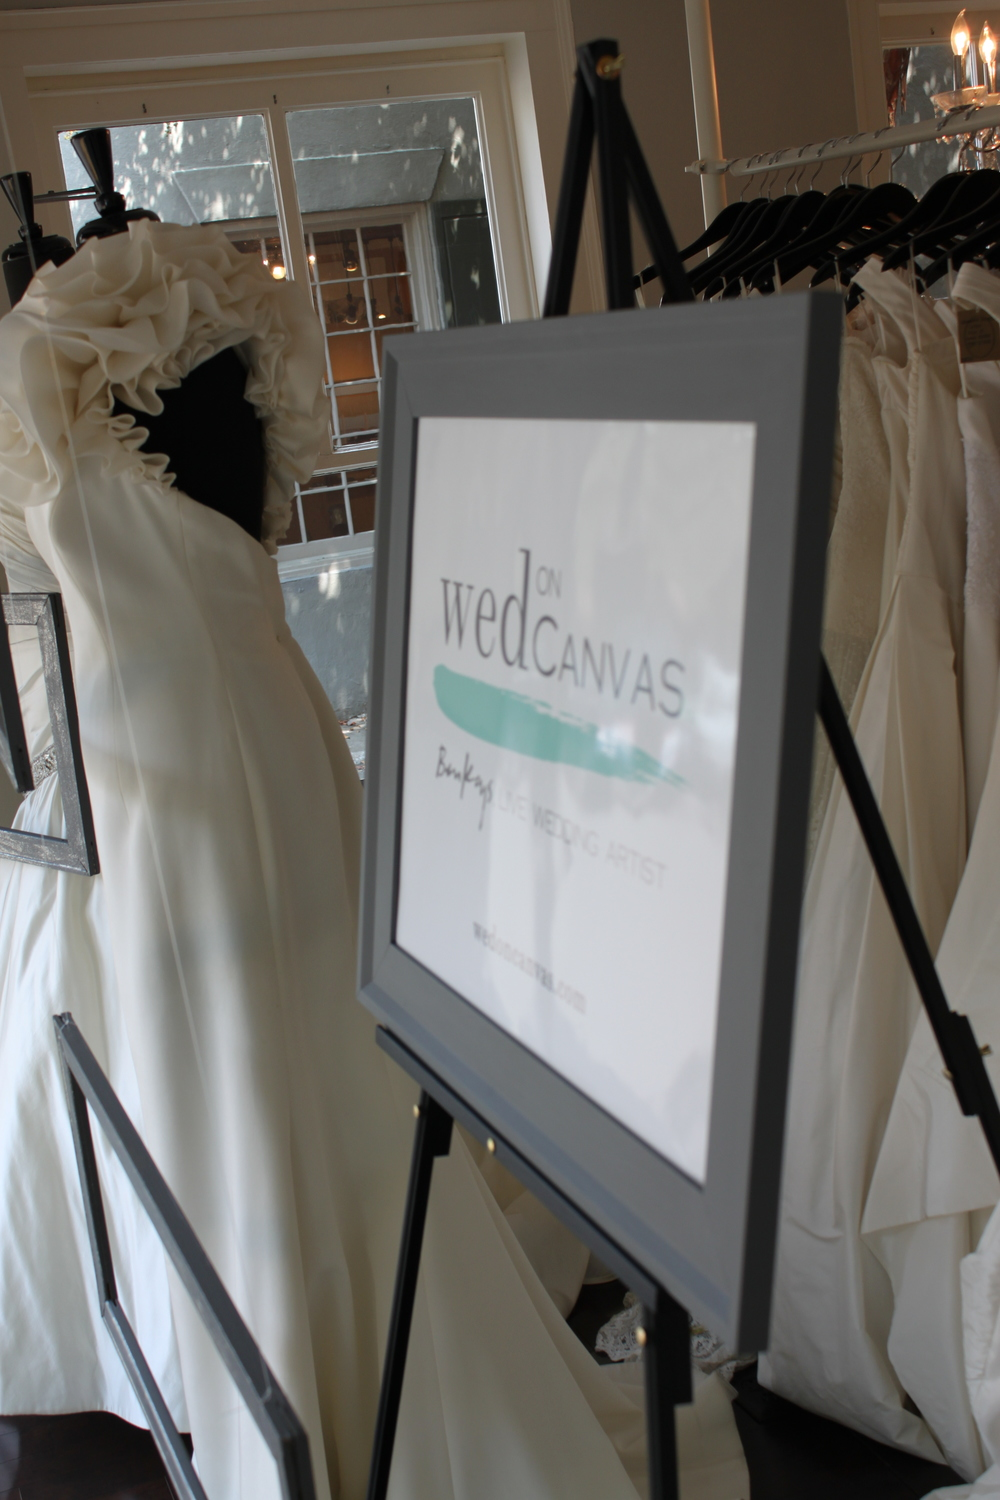 Fabulous Frocks Window Display - Charleston Wedding Artist, Ben Keys of Wed on Canvas.